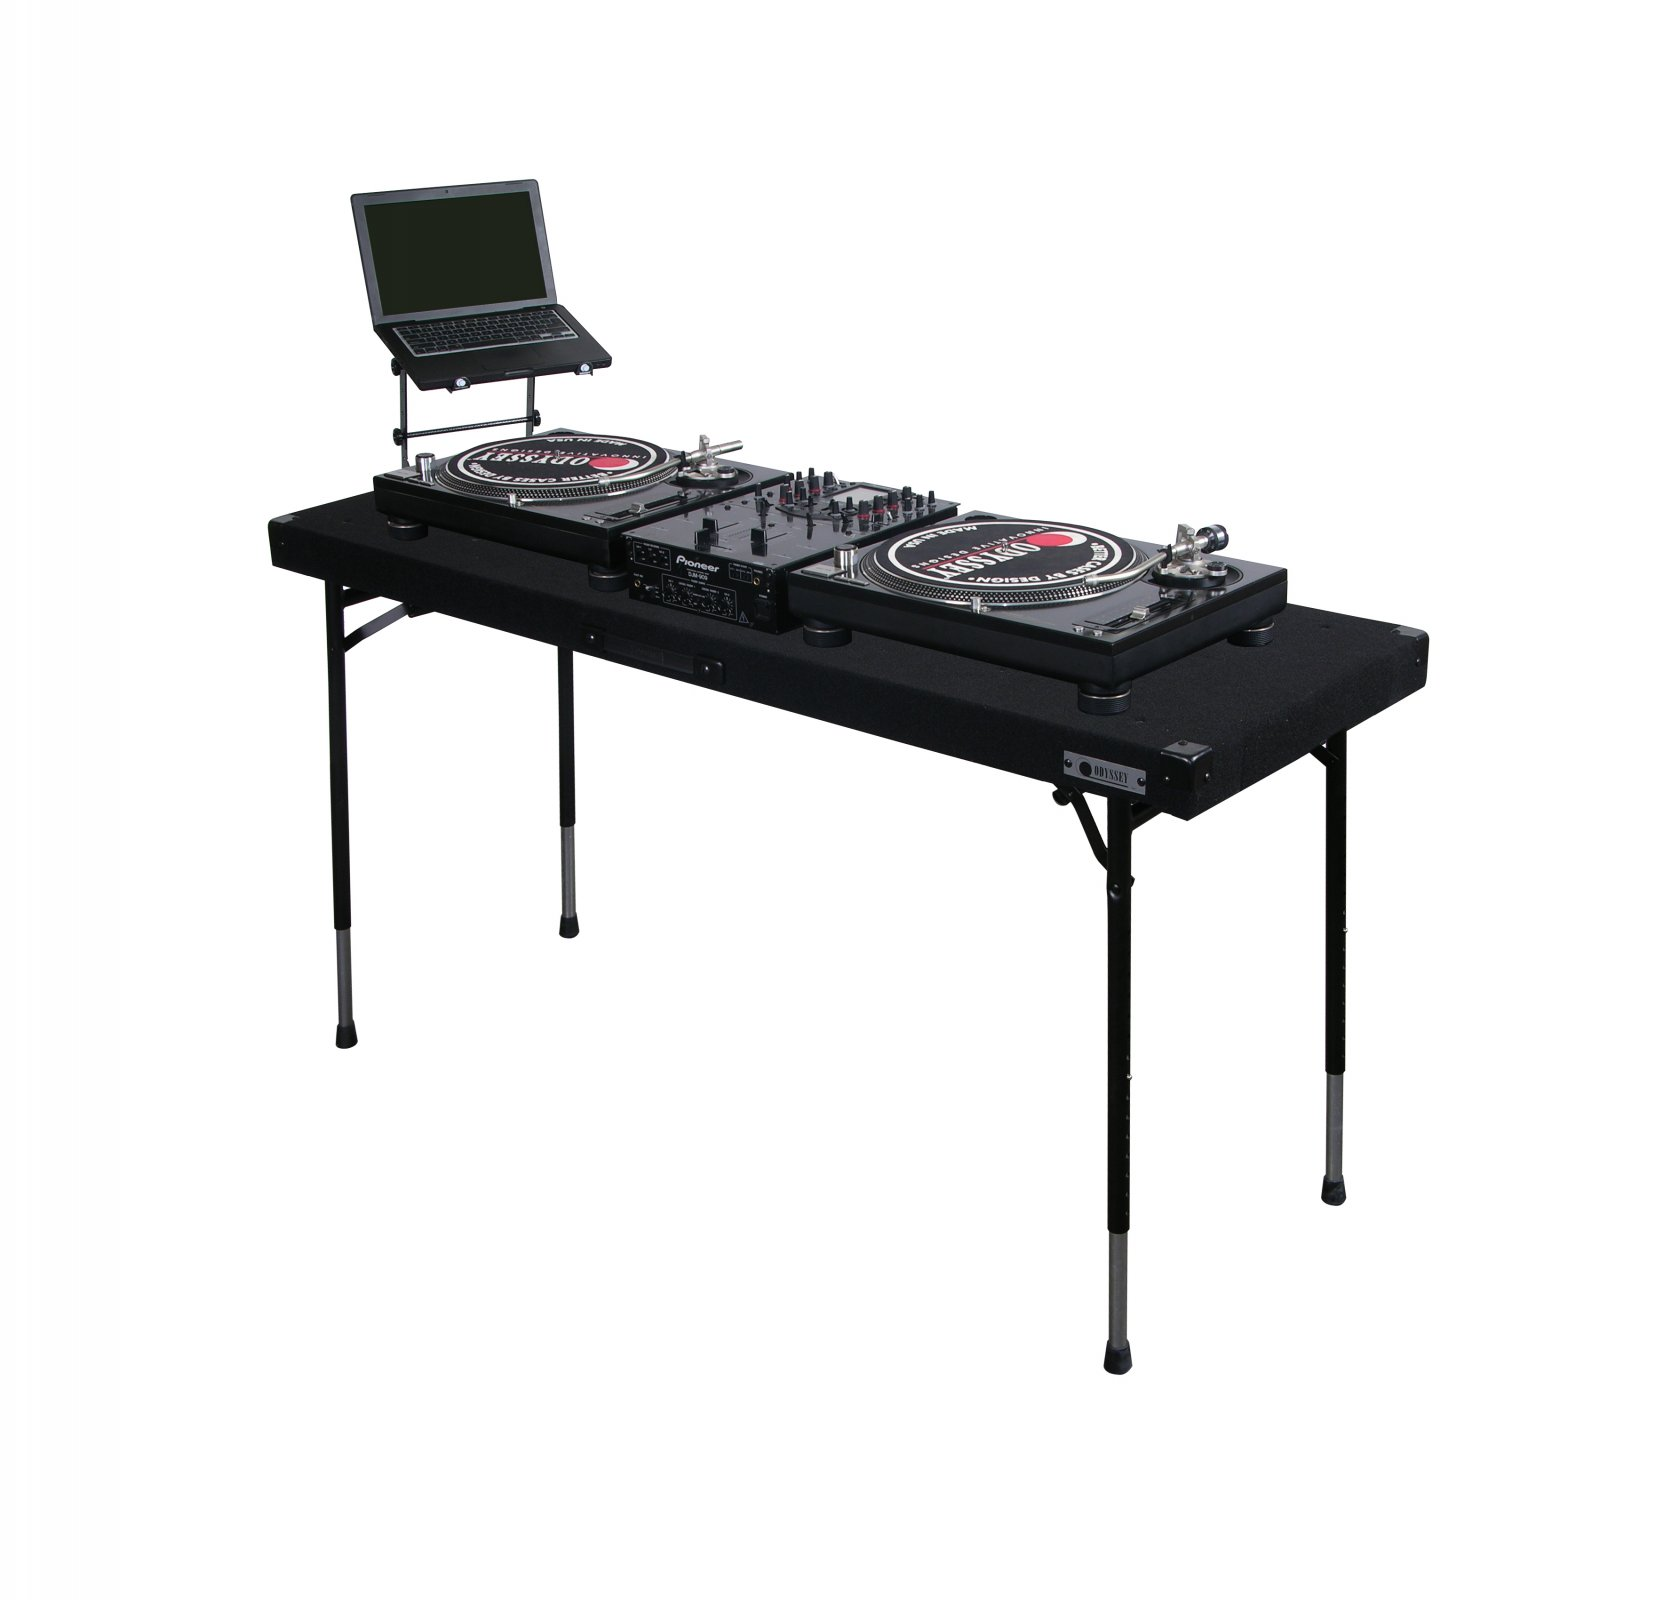 Odyssey Case CTBC2060 - DJ Table - Carpeted